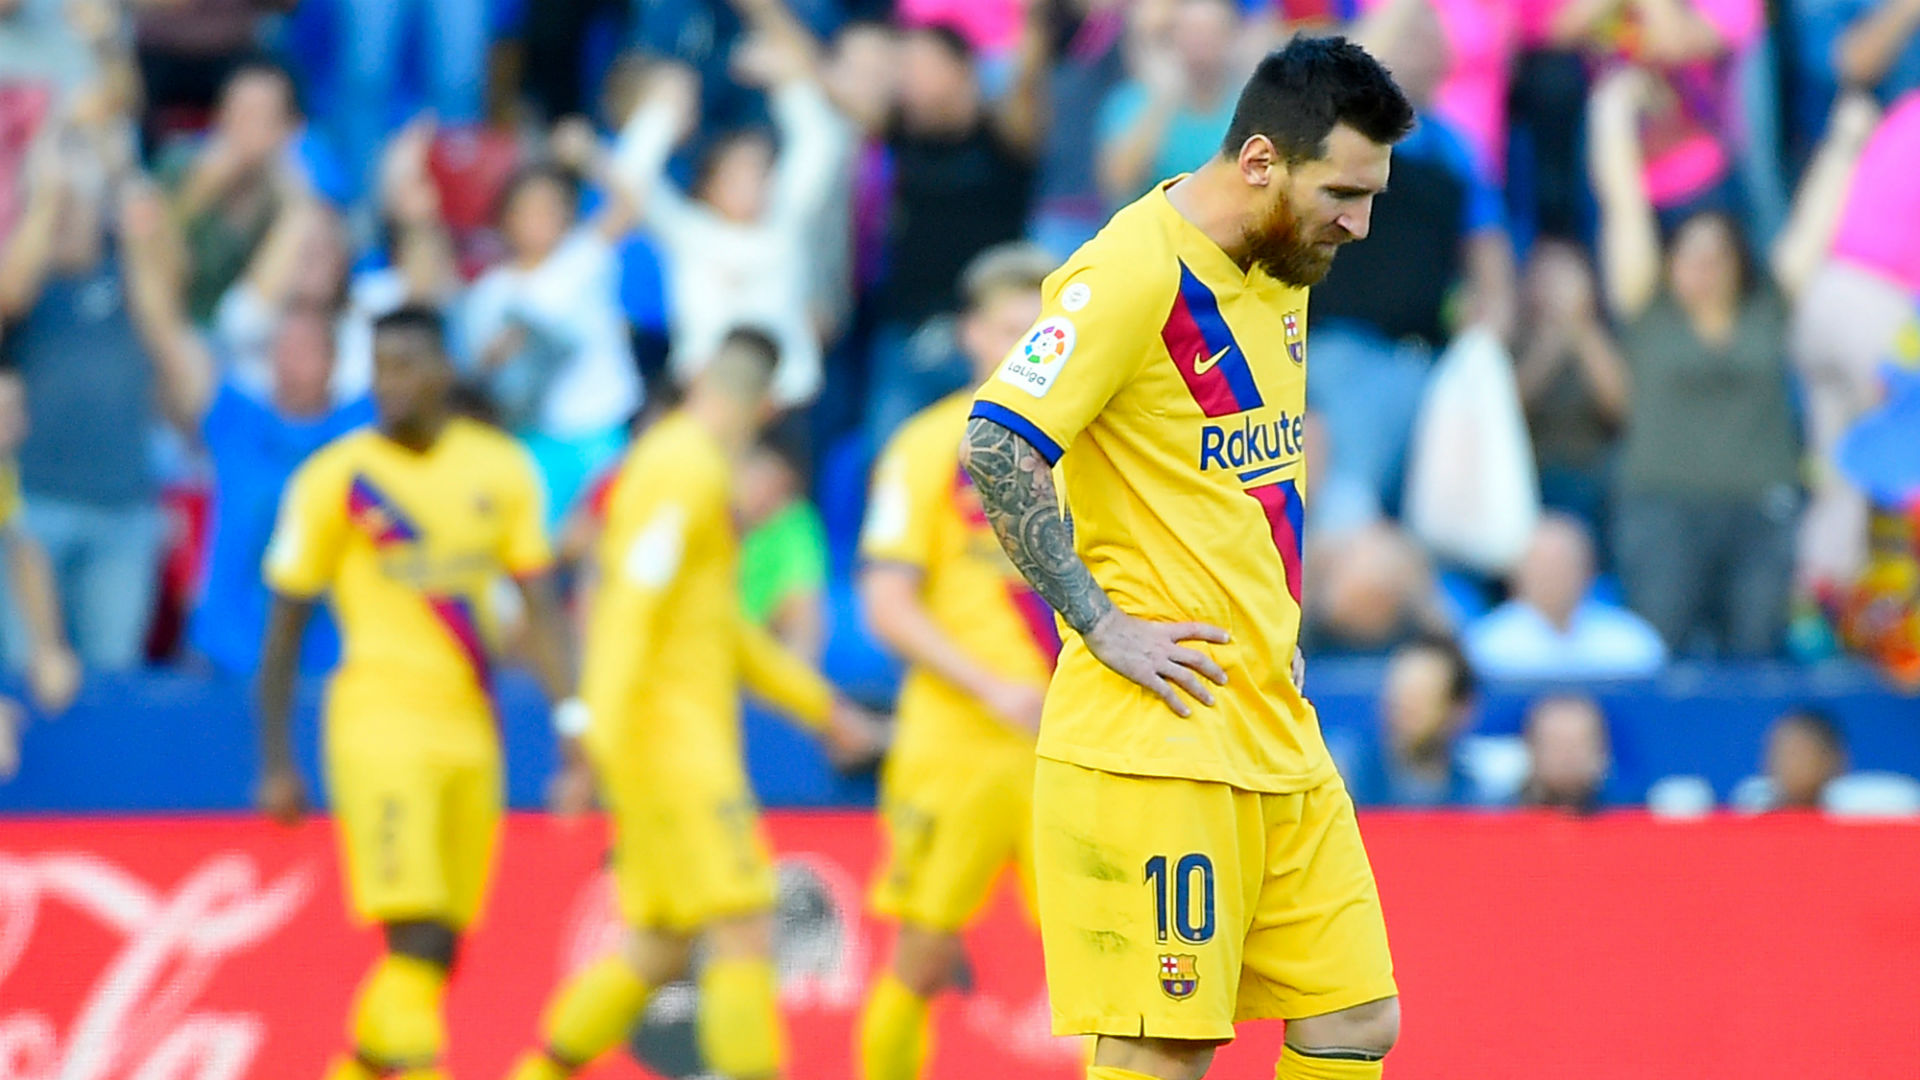 Rac1 barcelona celta betting phases of gait in running betting